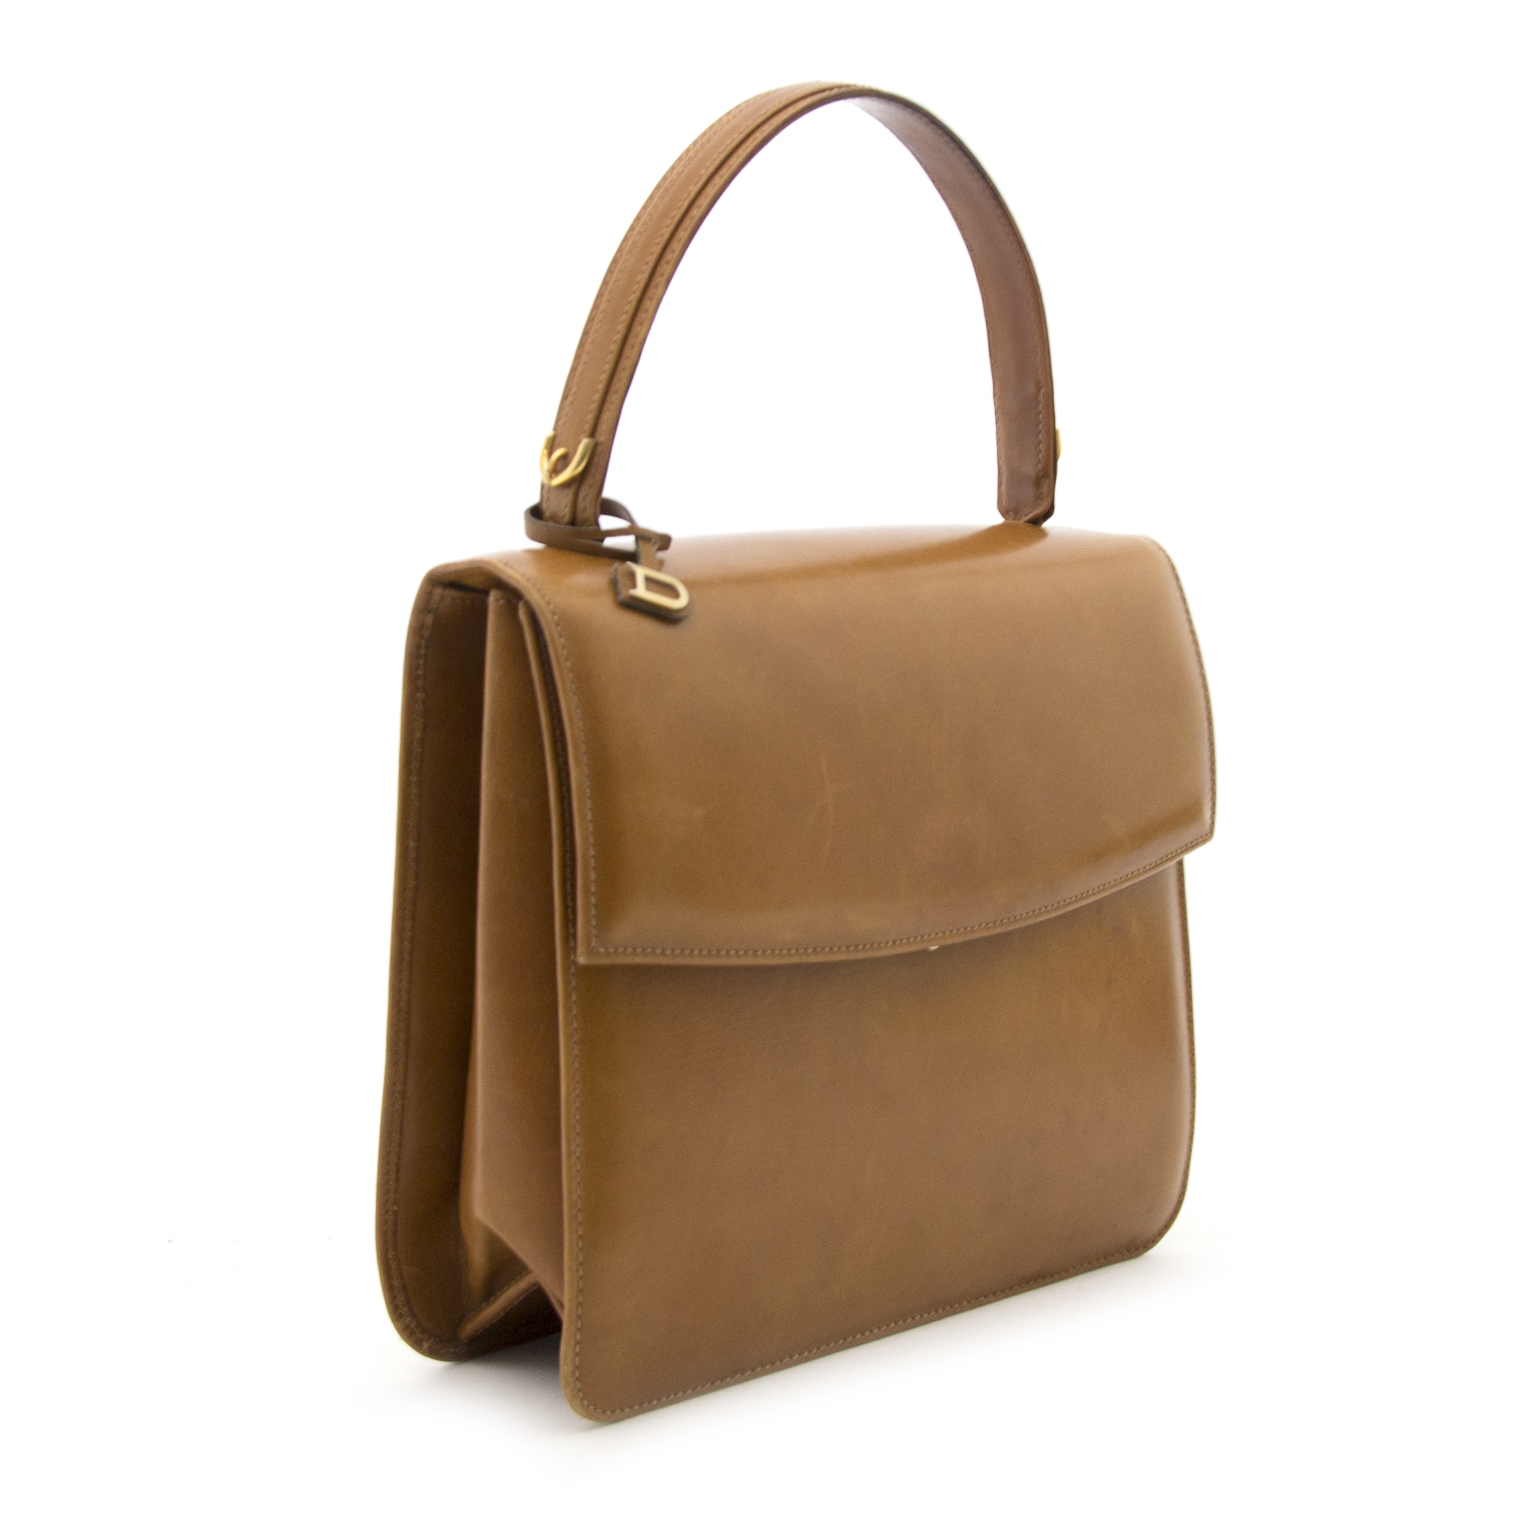 Now on www.labellov.com a real Delvaux top handle bag at the best price.